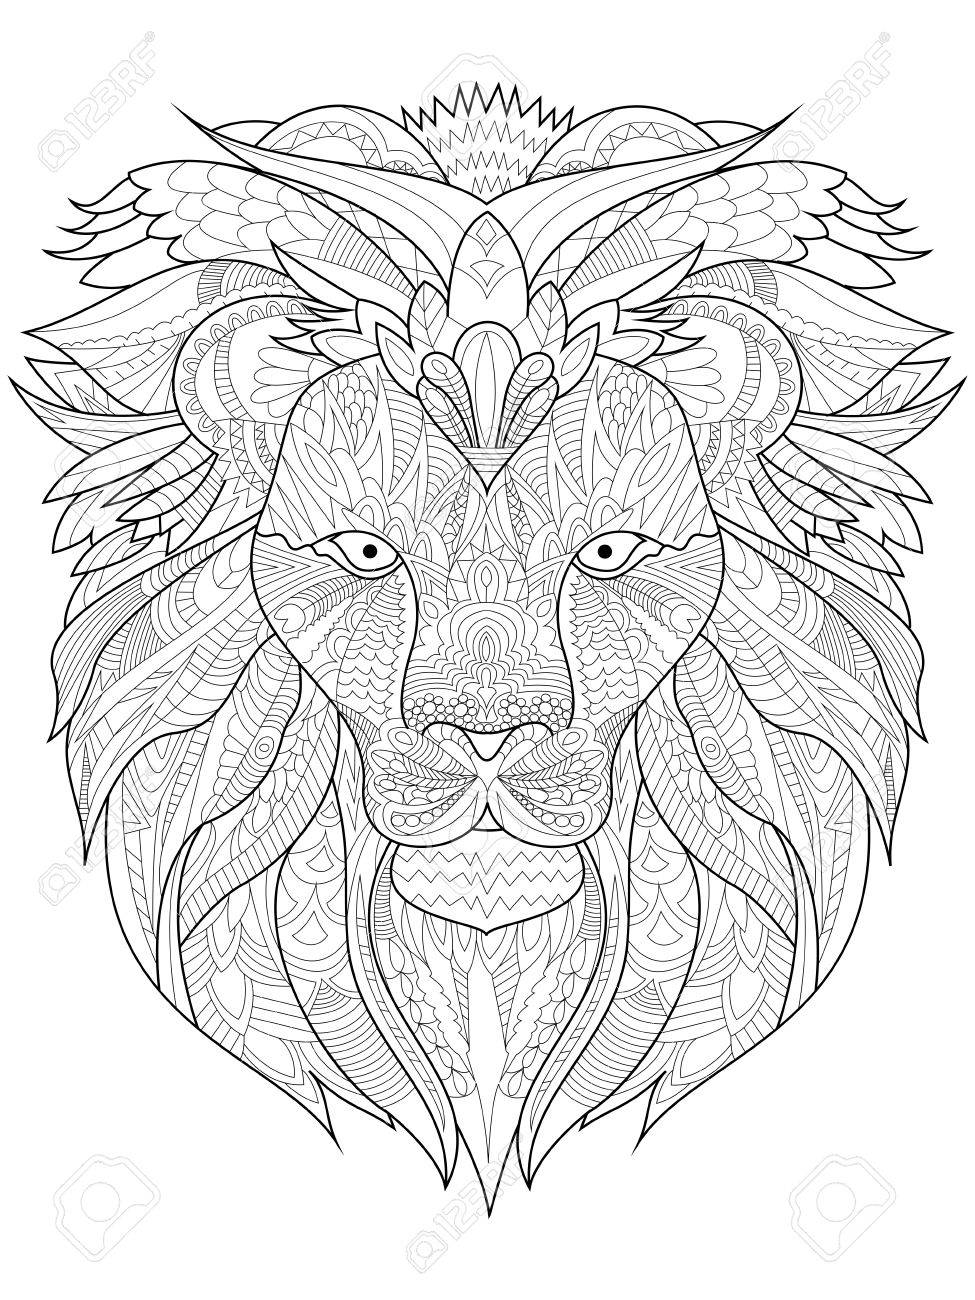 Lion Coloring Book For Adults Vector Illustration. Anti-stress ...